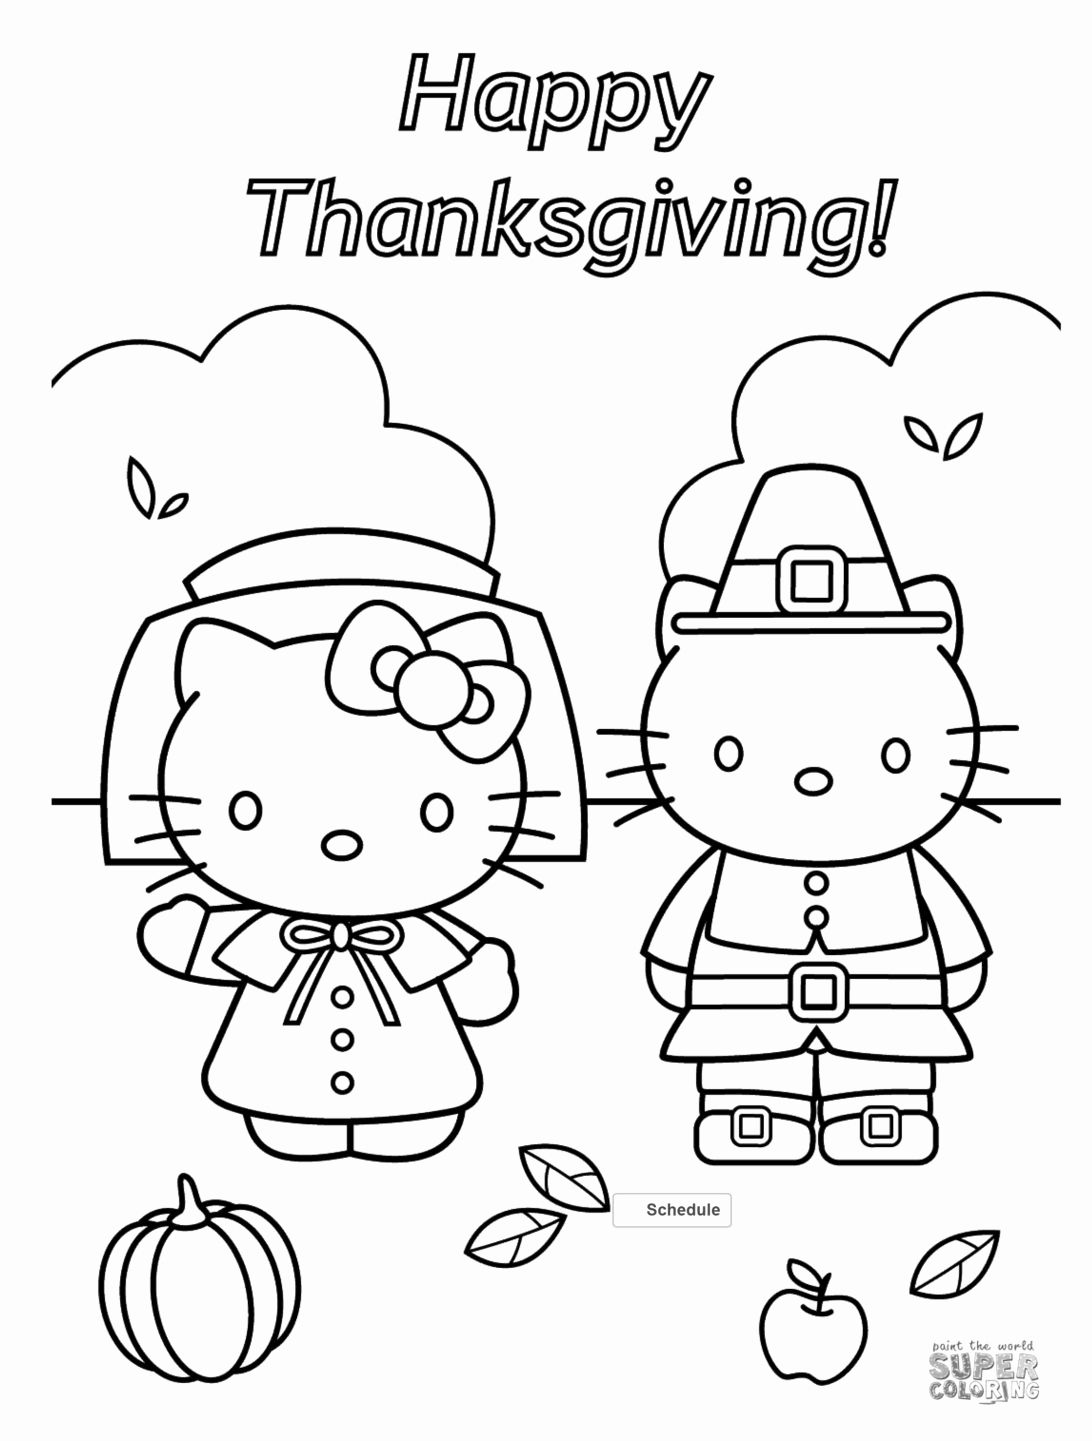 Free Printable Coloring Pages For Kids Fall Hello Kitty Coloring Thanksgiving Coloring Pages Hello Kitty Colouring Pages [ 1441 x 1092 Pixel ]